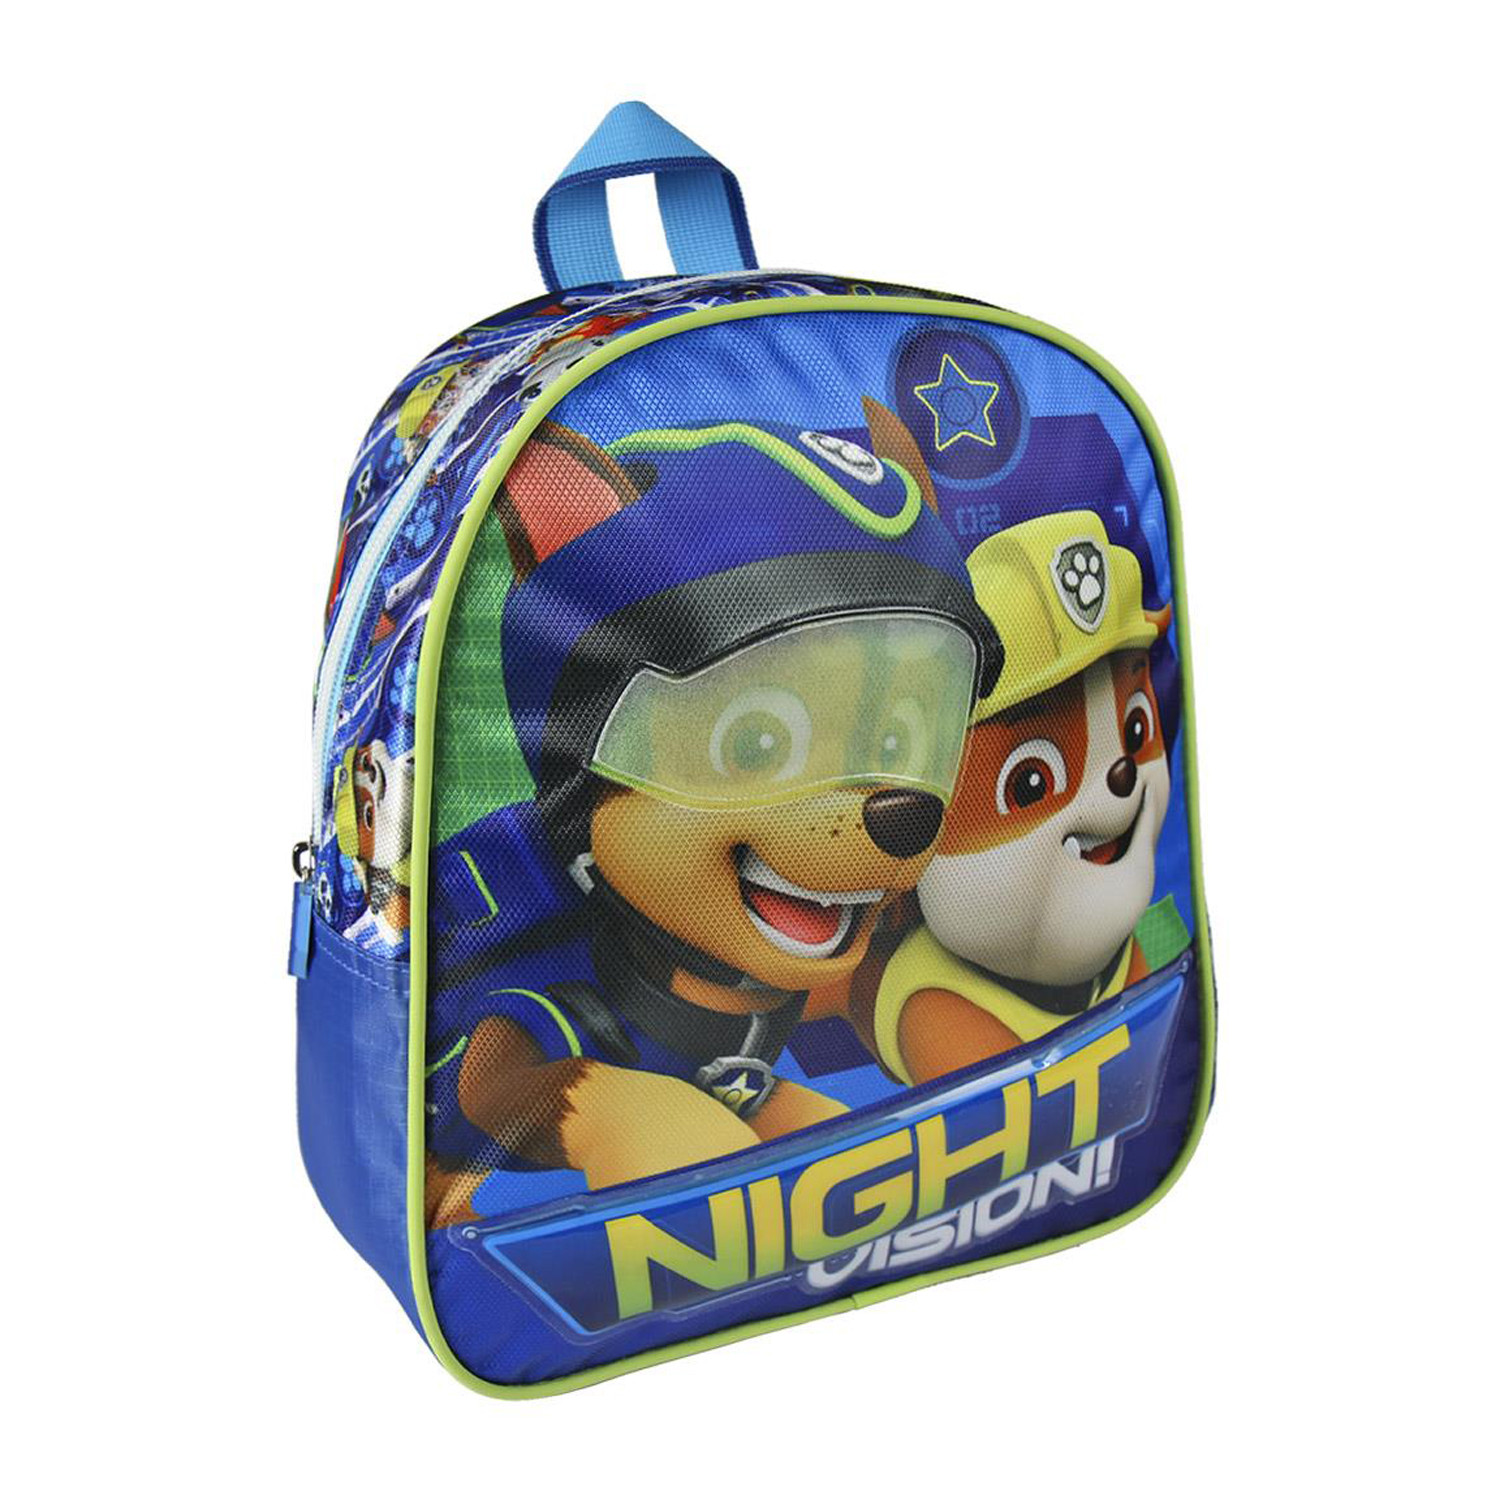 Children's backpack Night Vision Patrol Canine Original Home and More